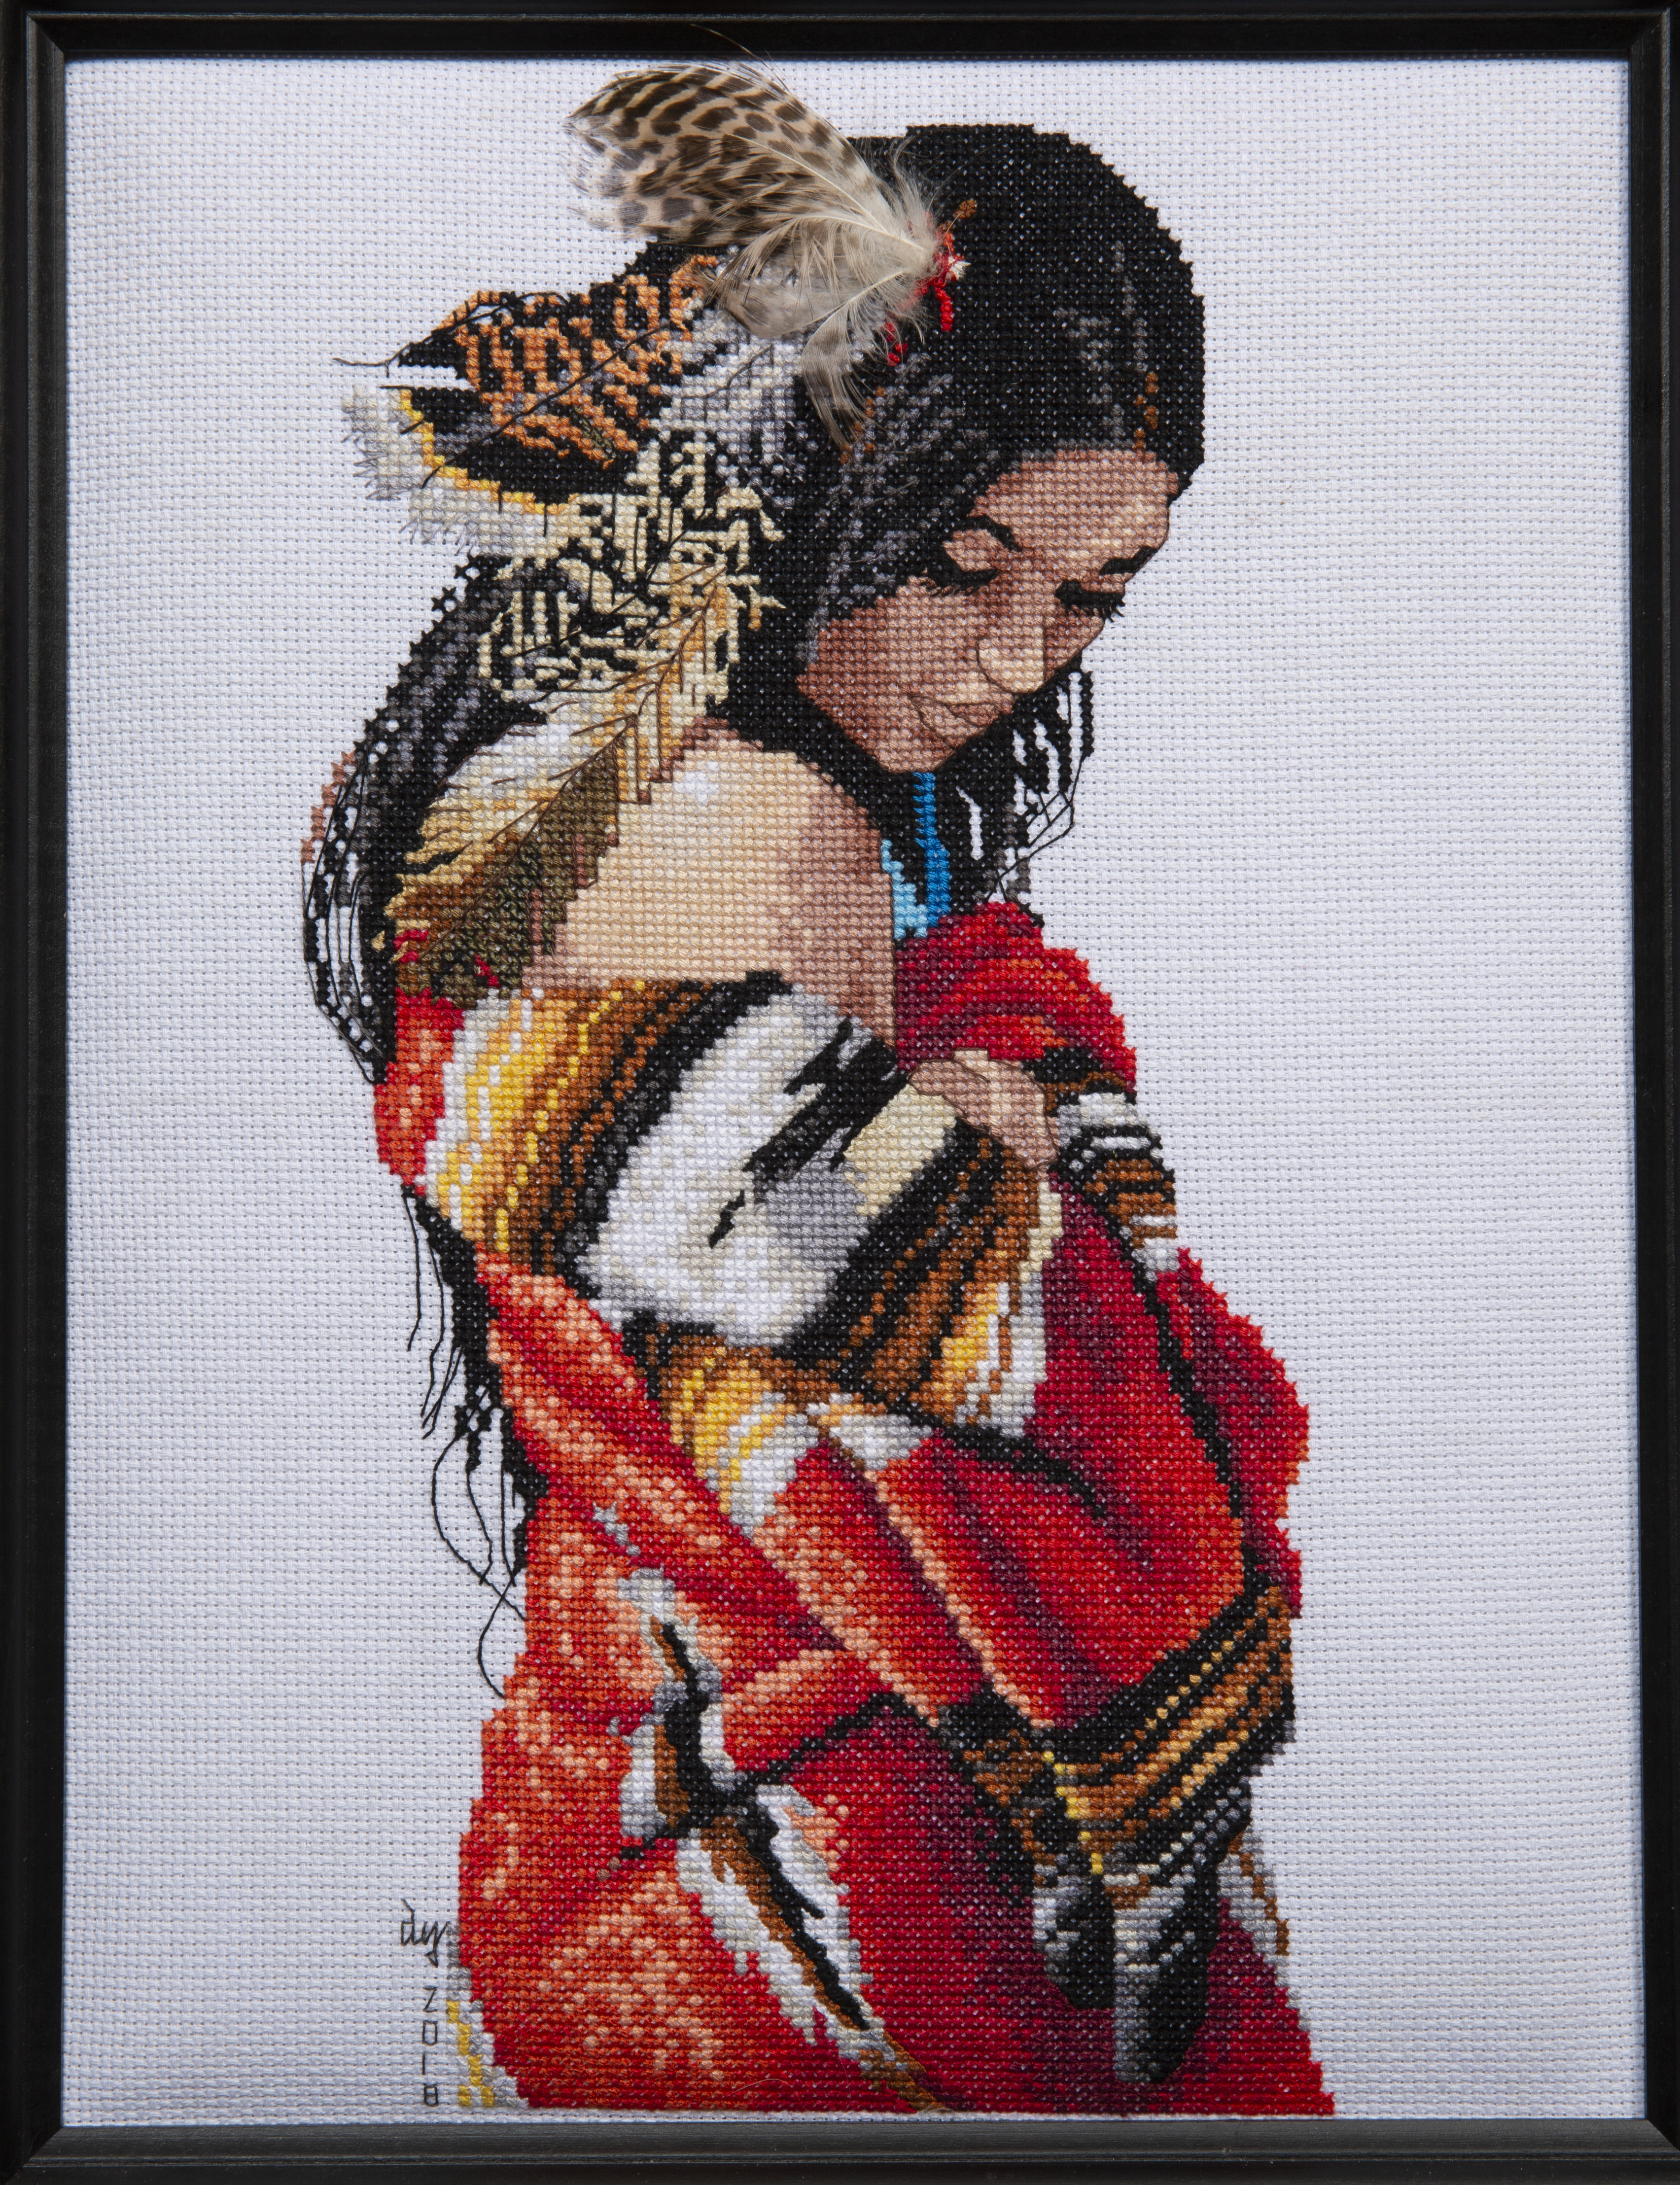 Needlework - Indian Maiden - needlework of young indian maiden with various feathers in her hair and wrapped in colorful red, yellow, white and black blanket.